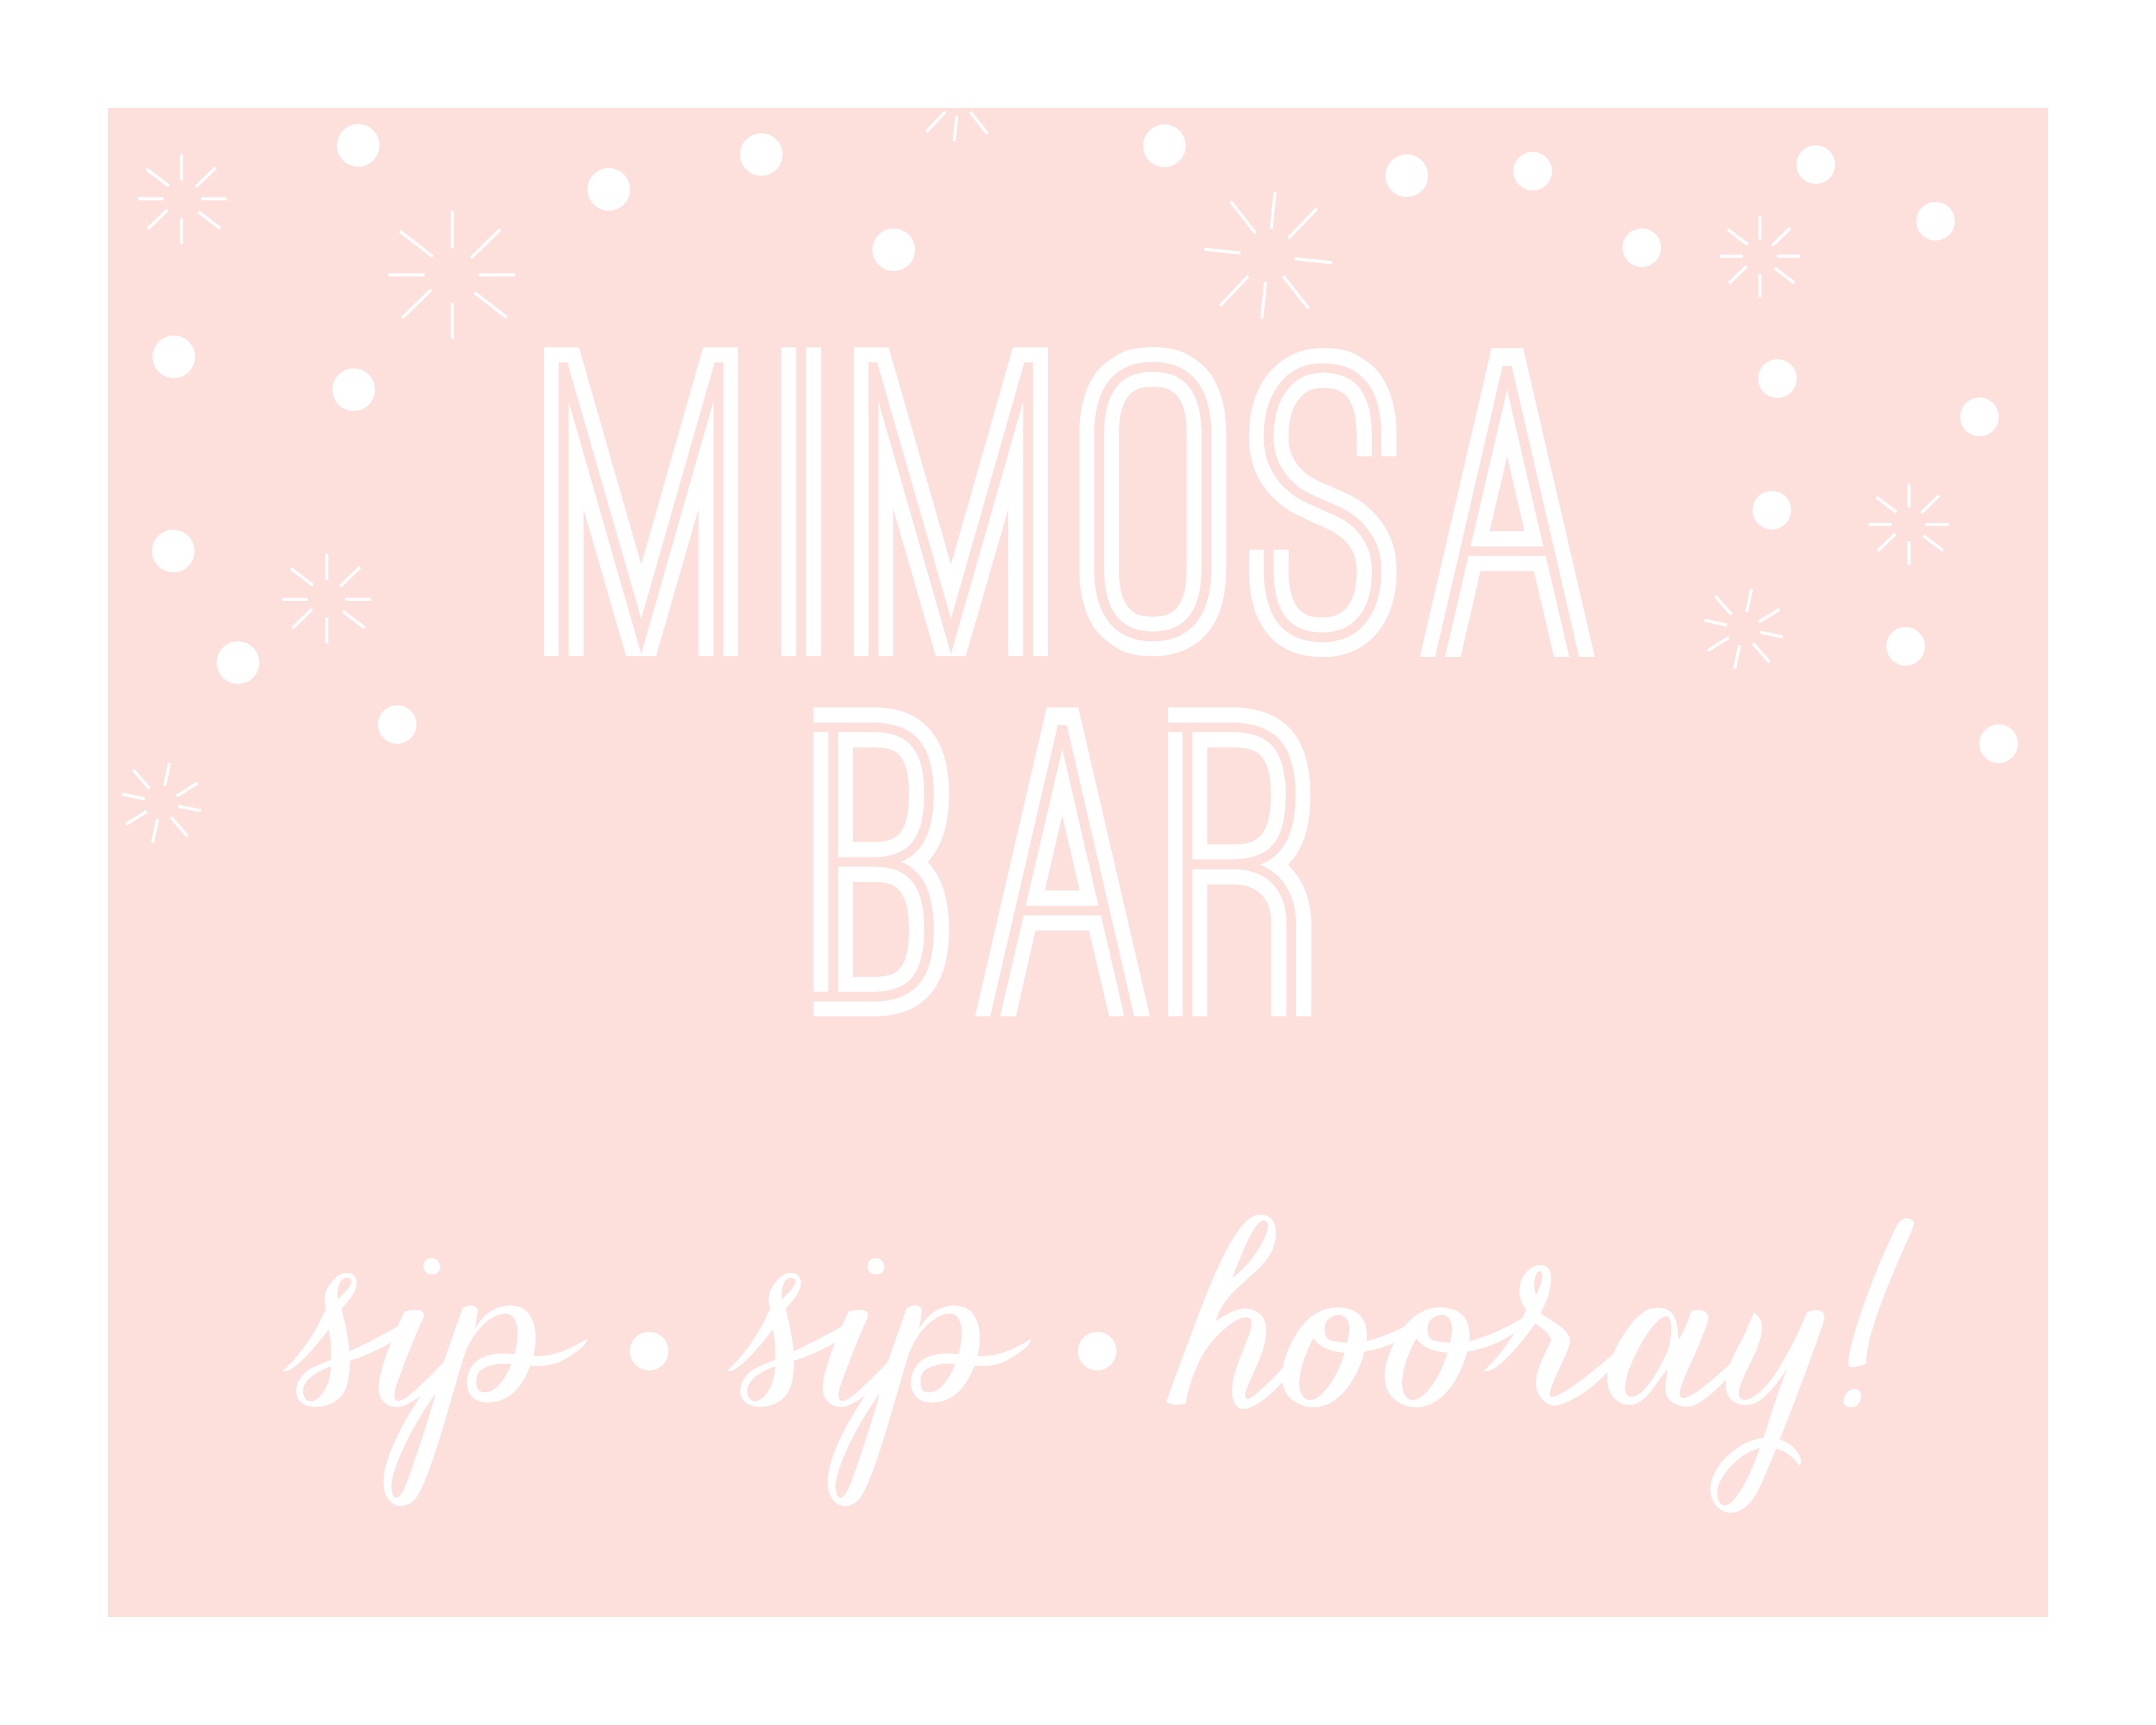 graphic relating to Mimosa Bar Sign Printable Free referred to as Bubbly Bridal Shower Enthusiasm oh my! ideas through steph